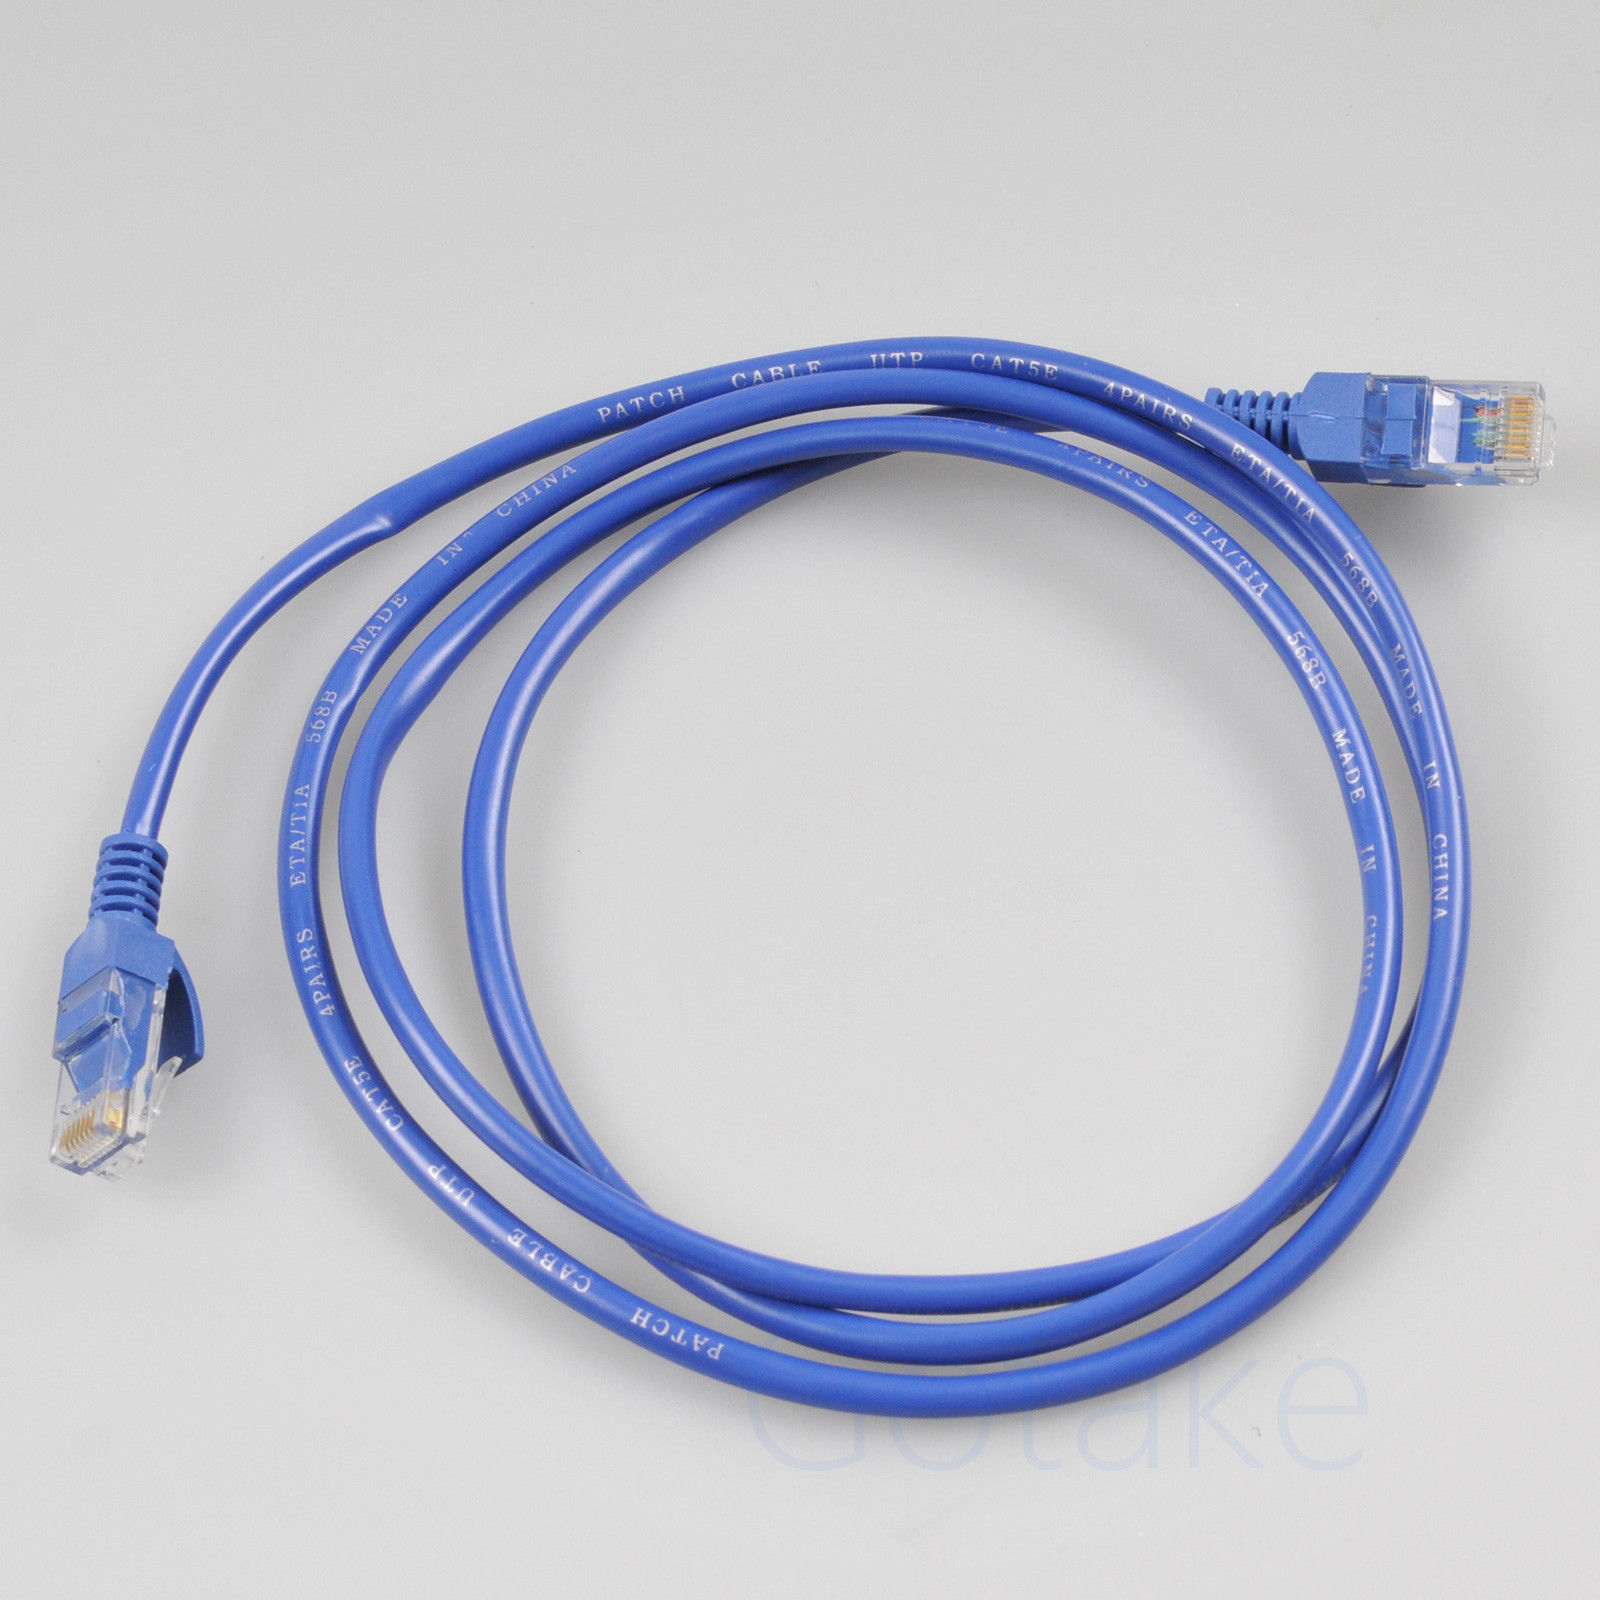 0.99 GBP - 1.5M 5Ft Cat5 Rj45 Ethernet Internet Wireless Router ...